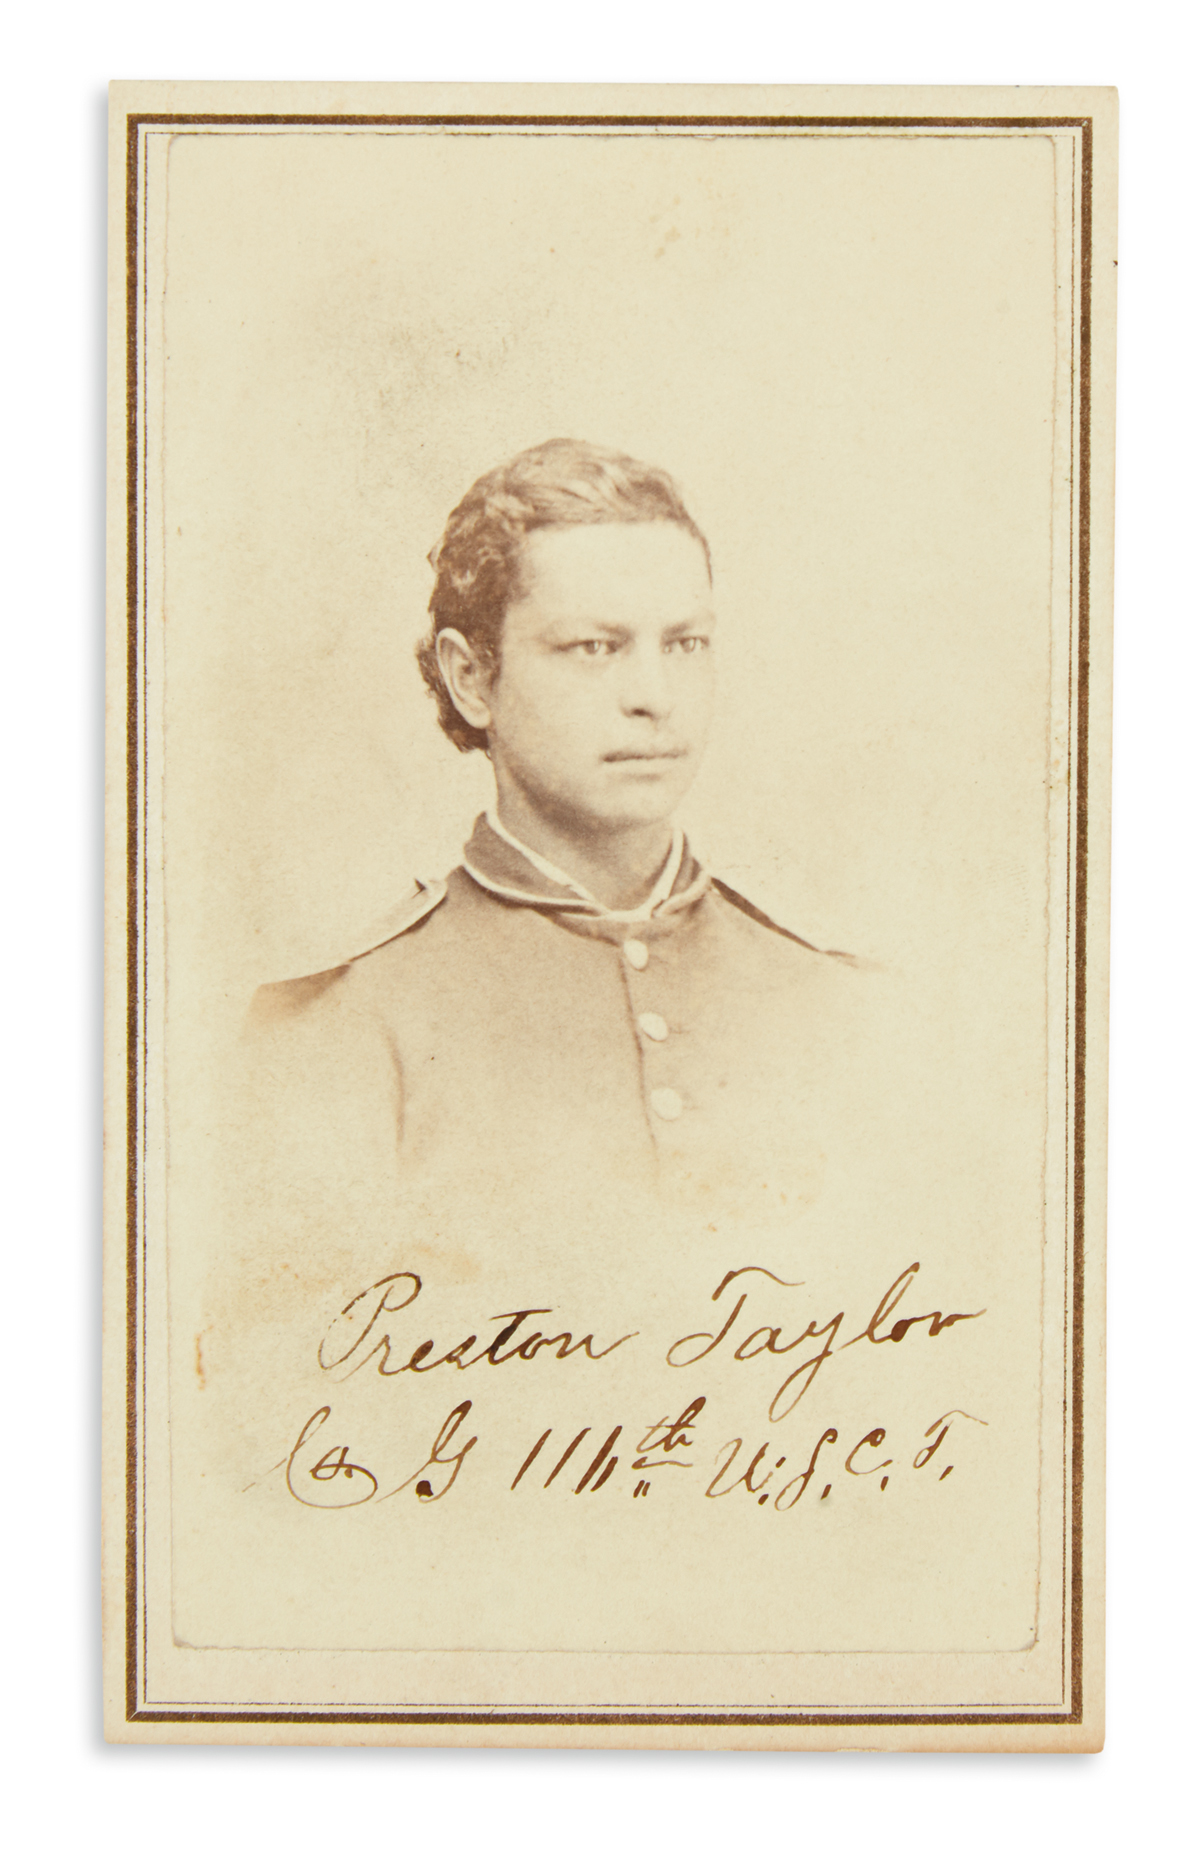 (MILITARY.) Signed photograph of Preston Taylor as a drummer with the 116th United States Colored Troops.